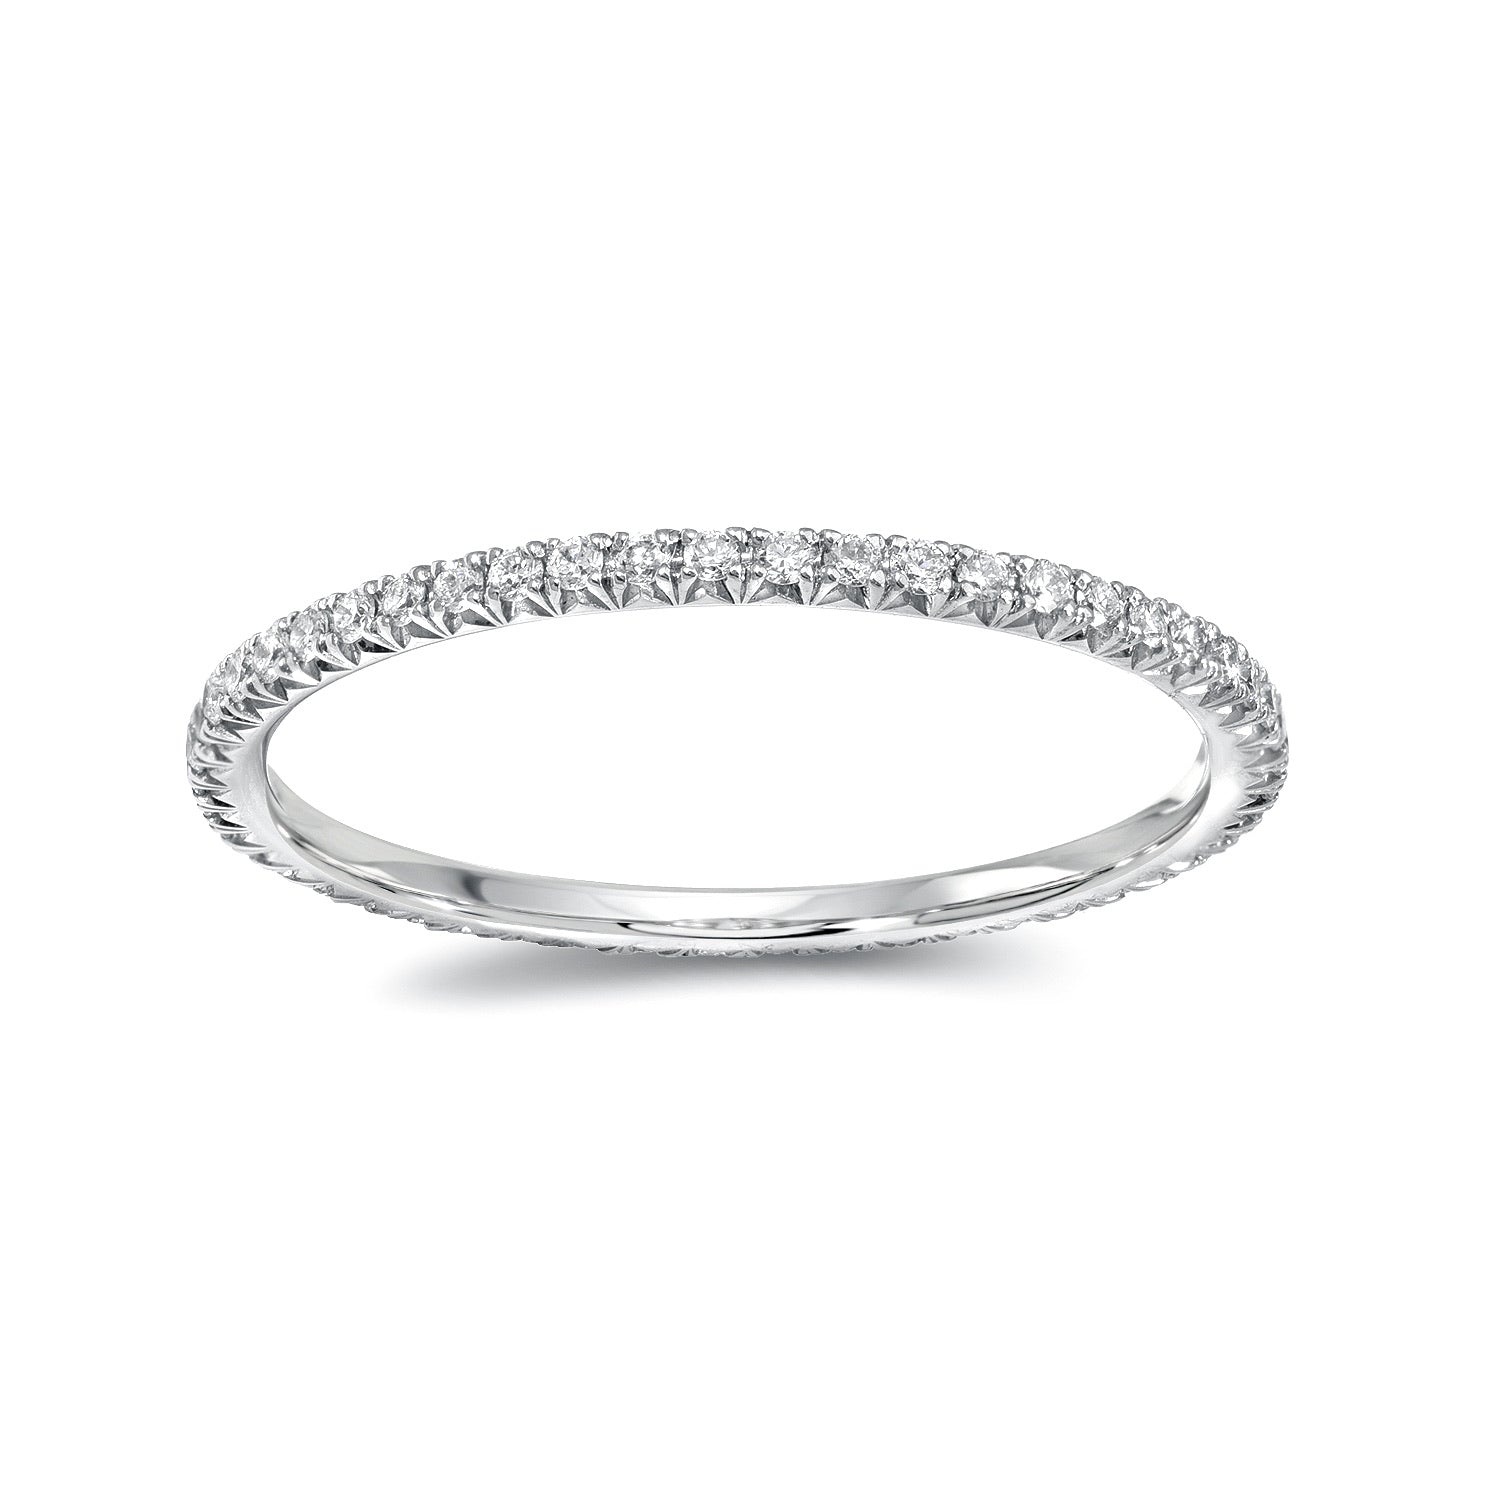 Round diamond Eternity Band - White Gold